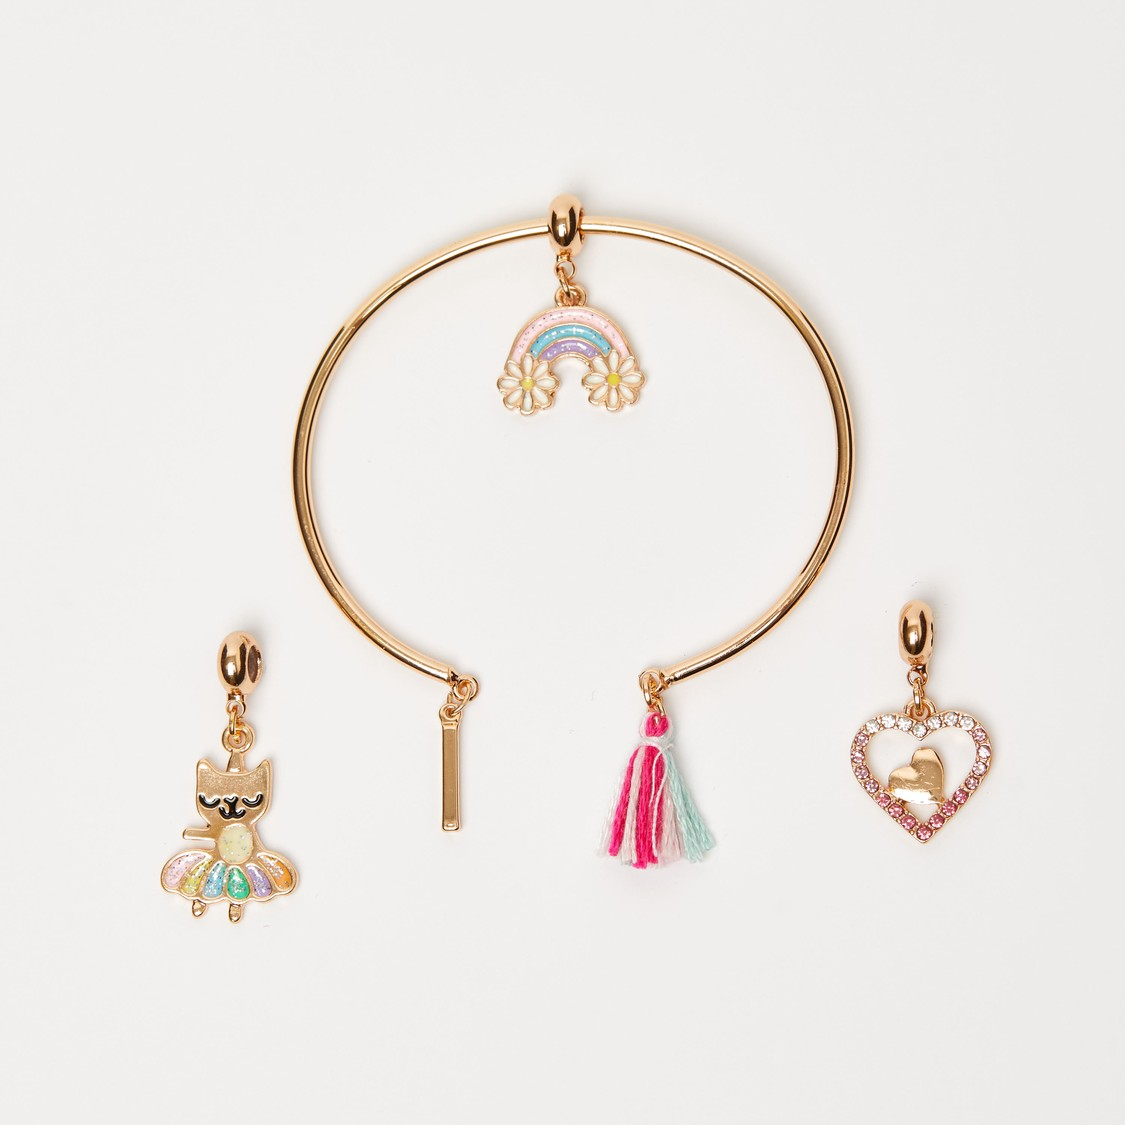 Cuff Bracelet with Tassel and Charms